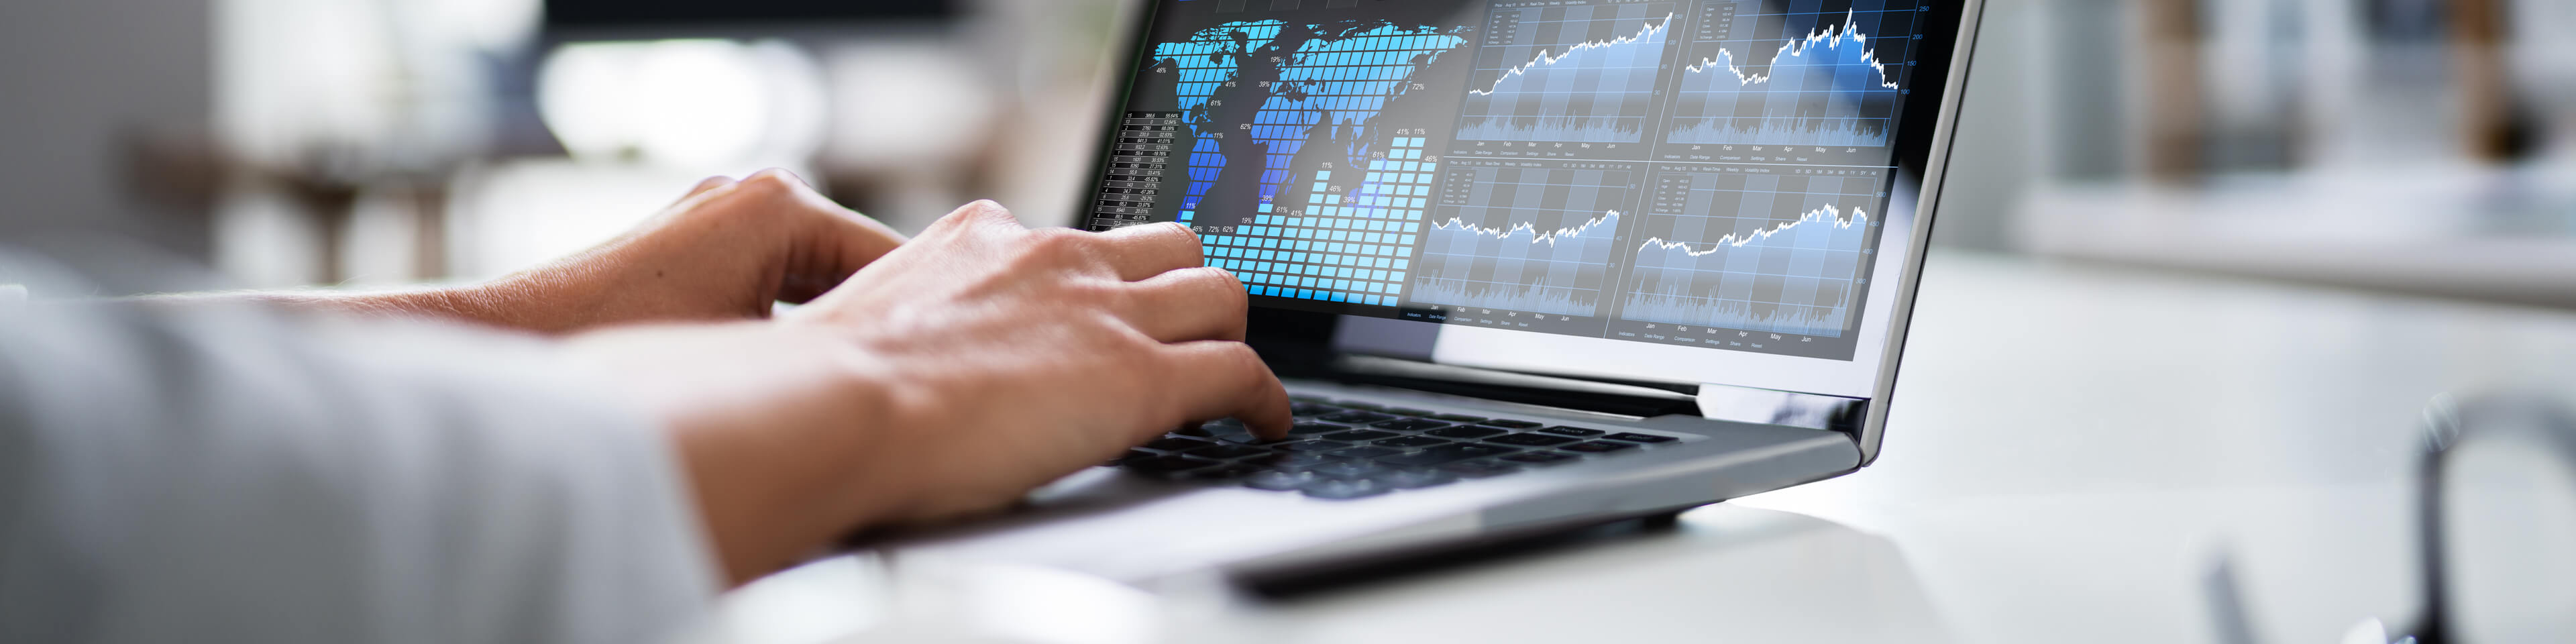 laptop screen showing charts and a world map in data, person typing on the keyboard